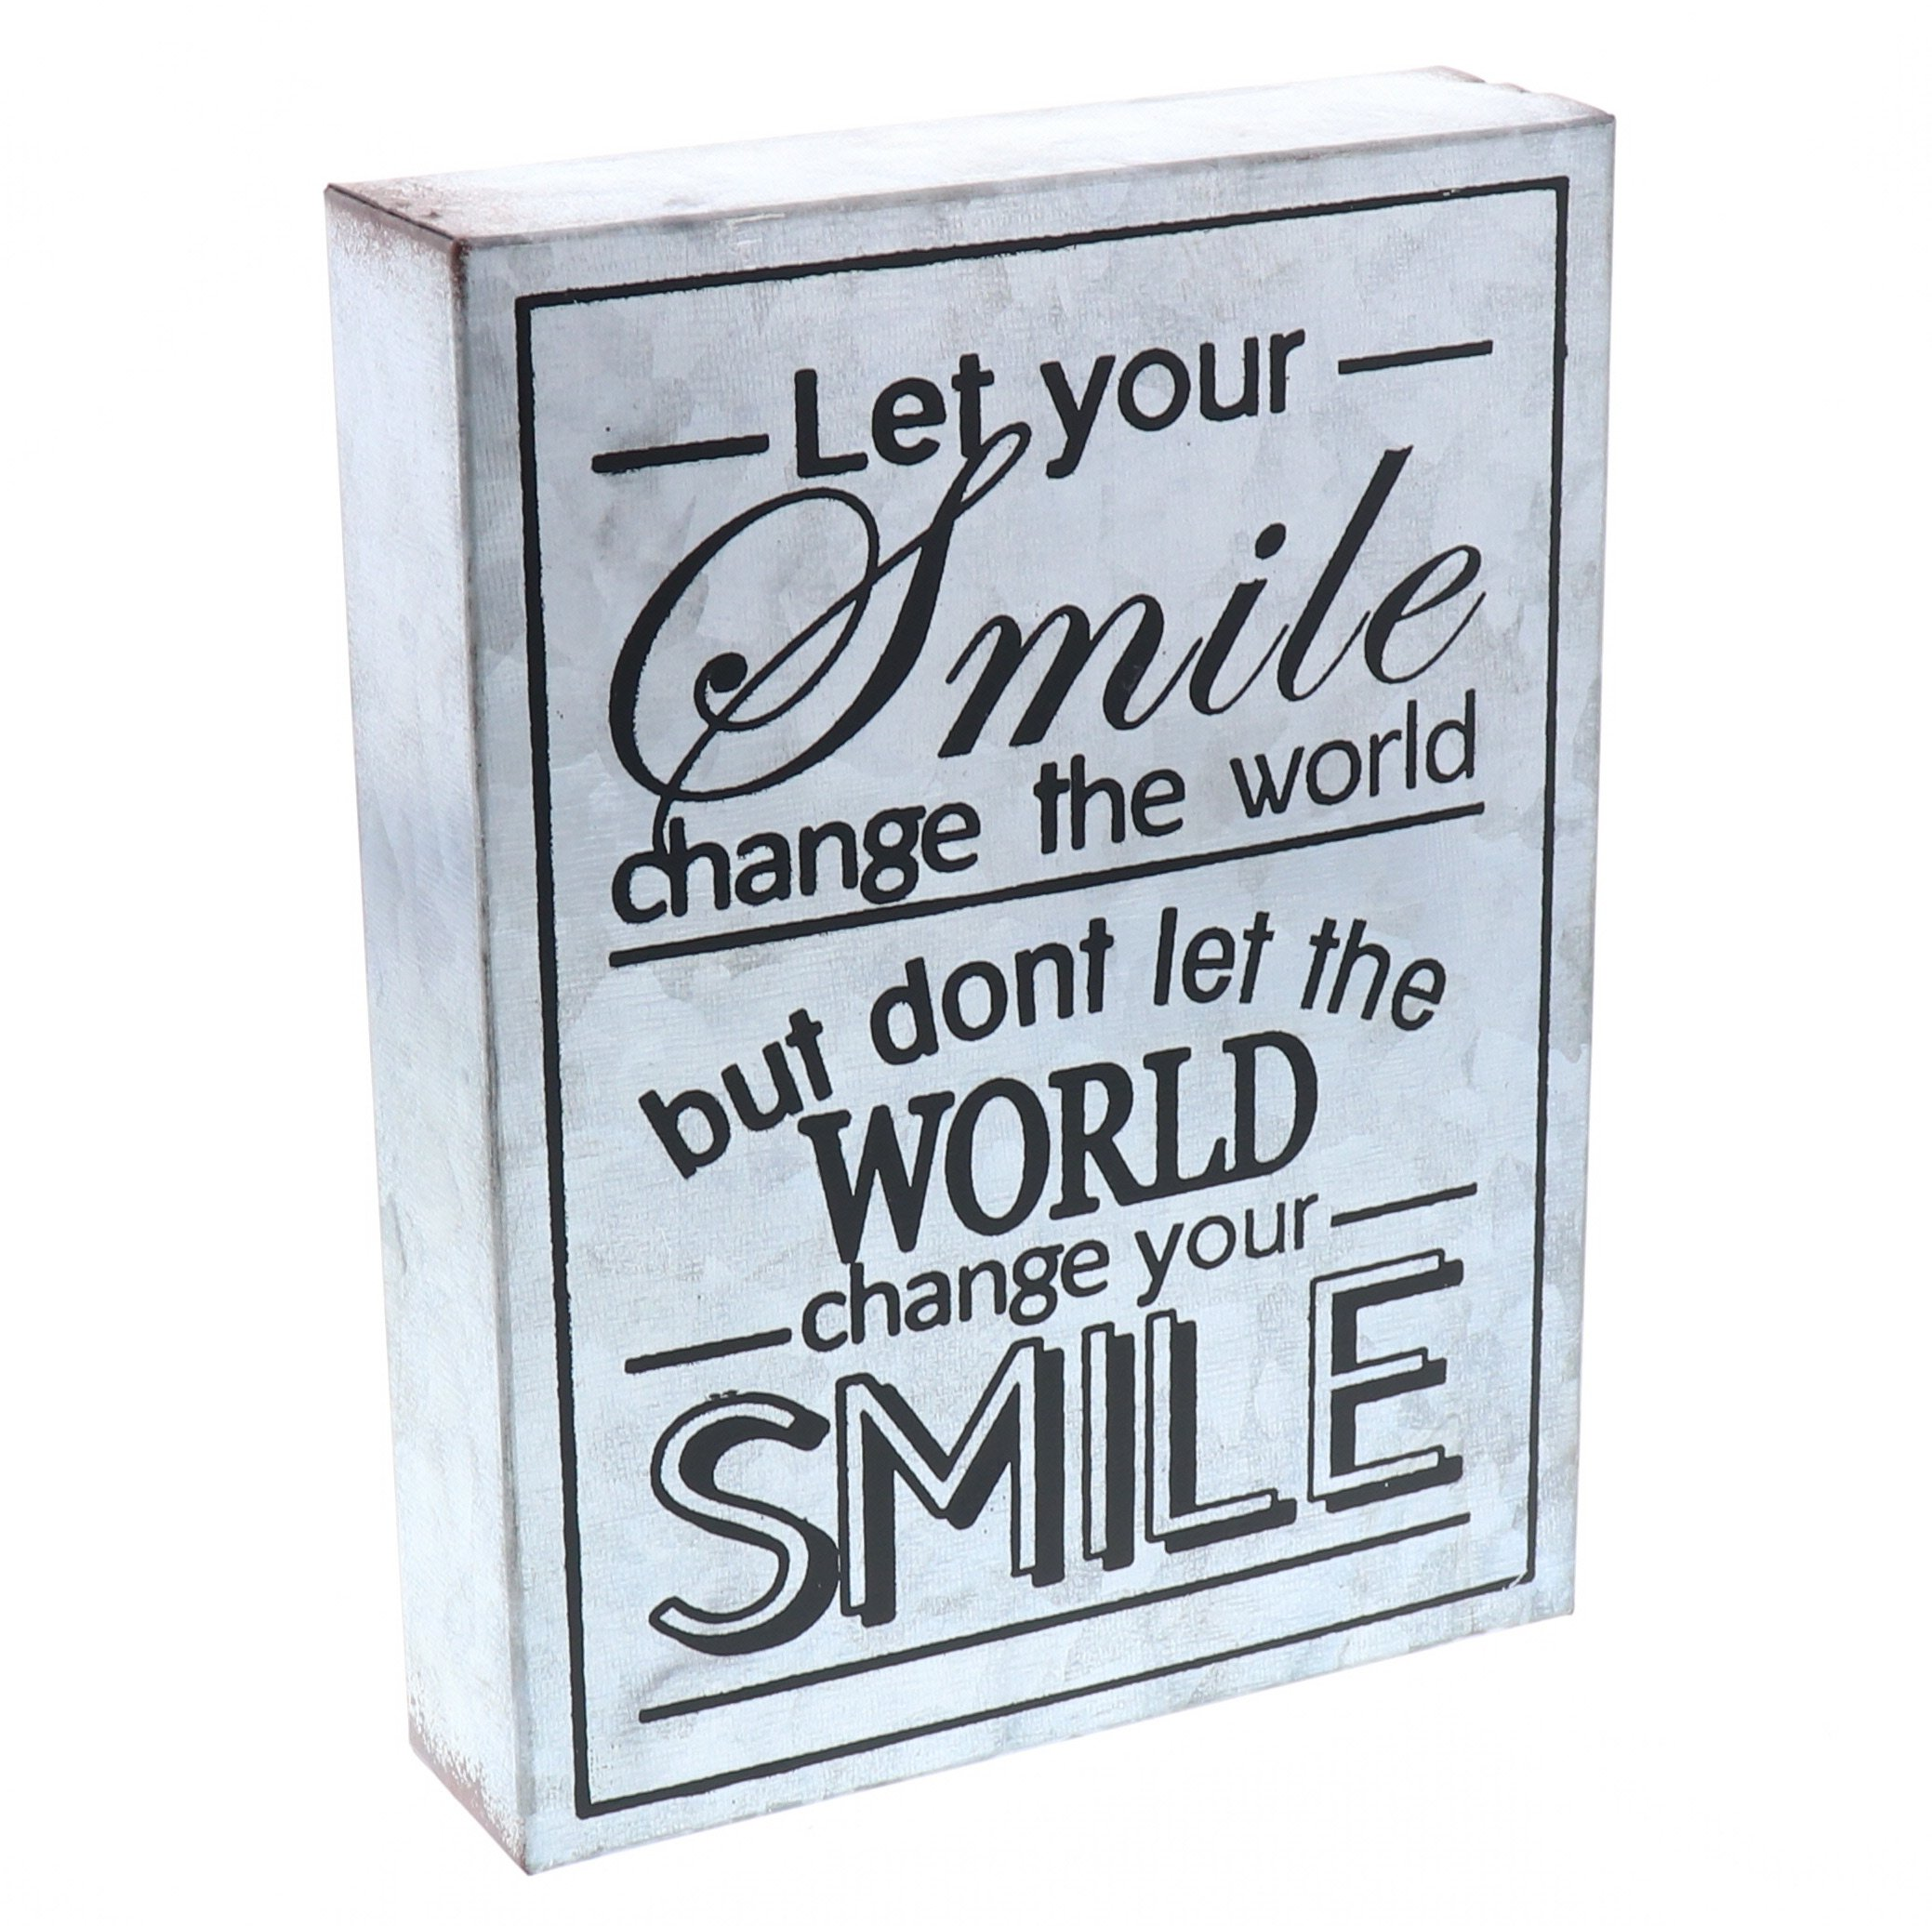 Barnyard Designs Let Your Smile Change The World Galvanized Metal Box Wall Art Sign, Primitive Country Farmhouse Home Decor Sign with Sayings 8'' x 6''